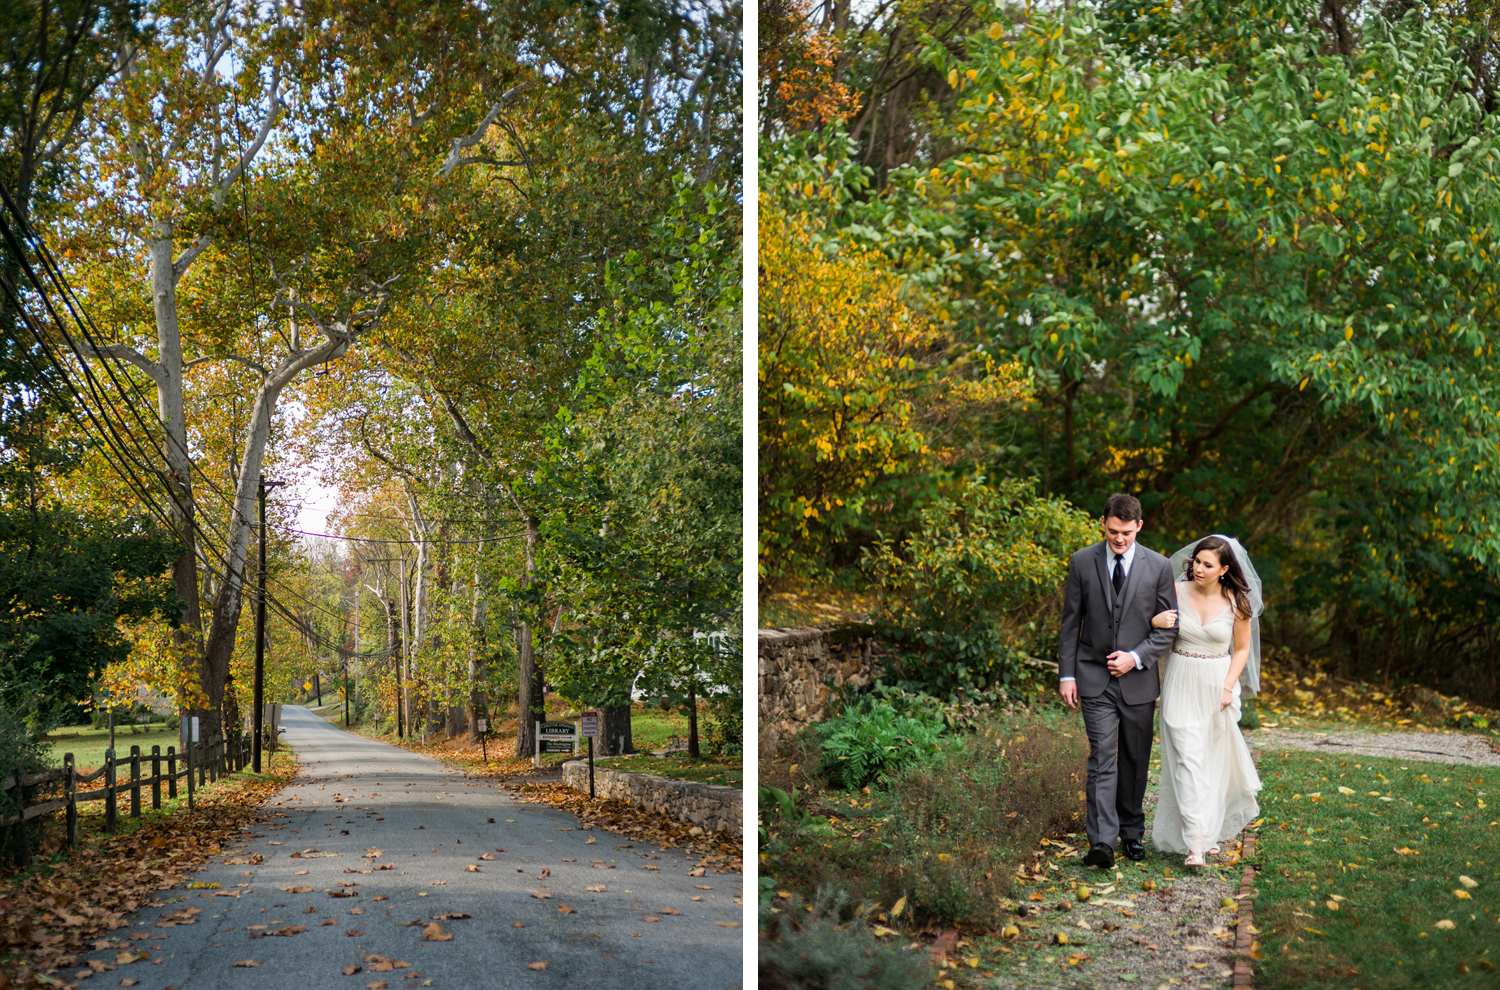 Siousca_Photography_Philadelphia_wedding_photographer_the_washington_historic_yellow_springs_wedding_18.jpg